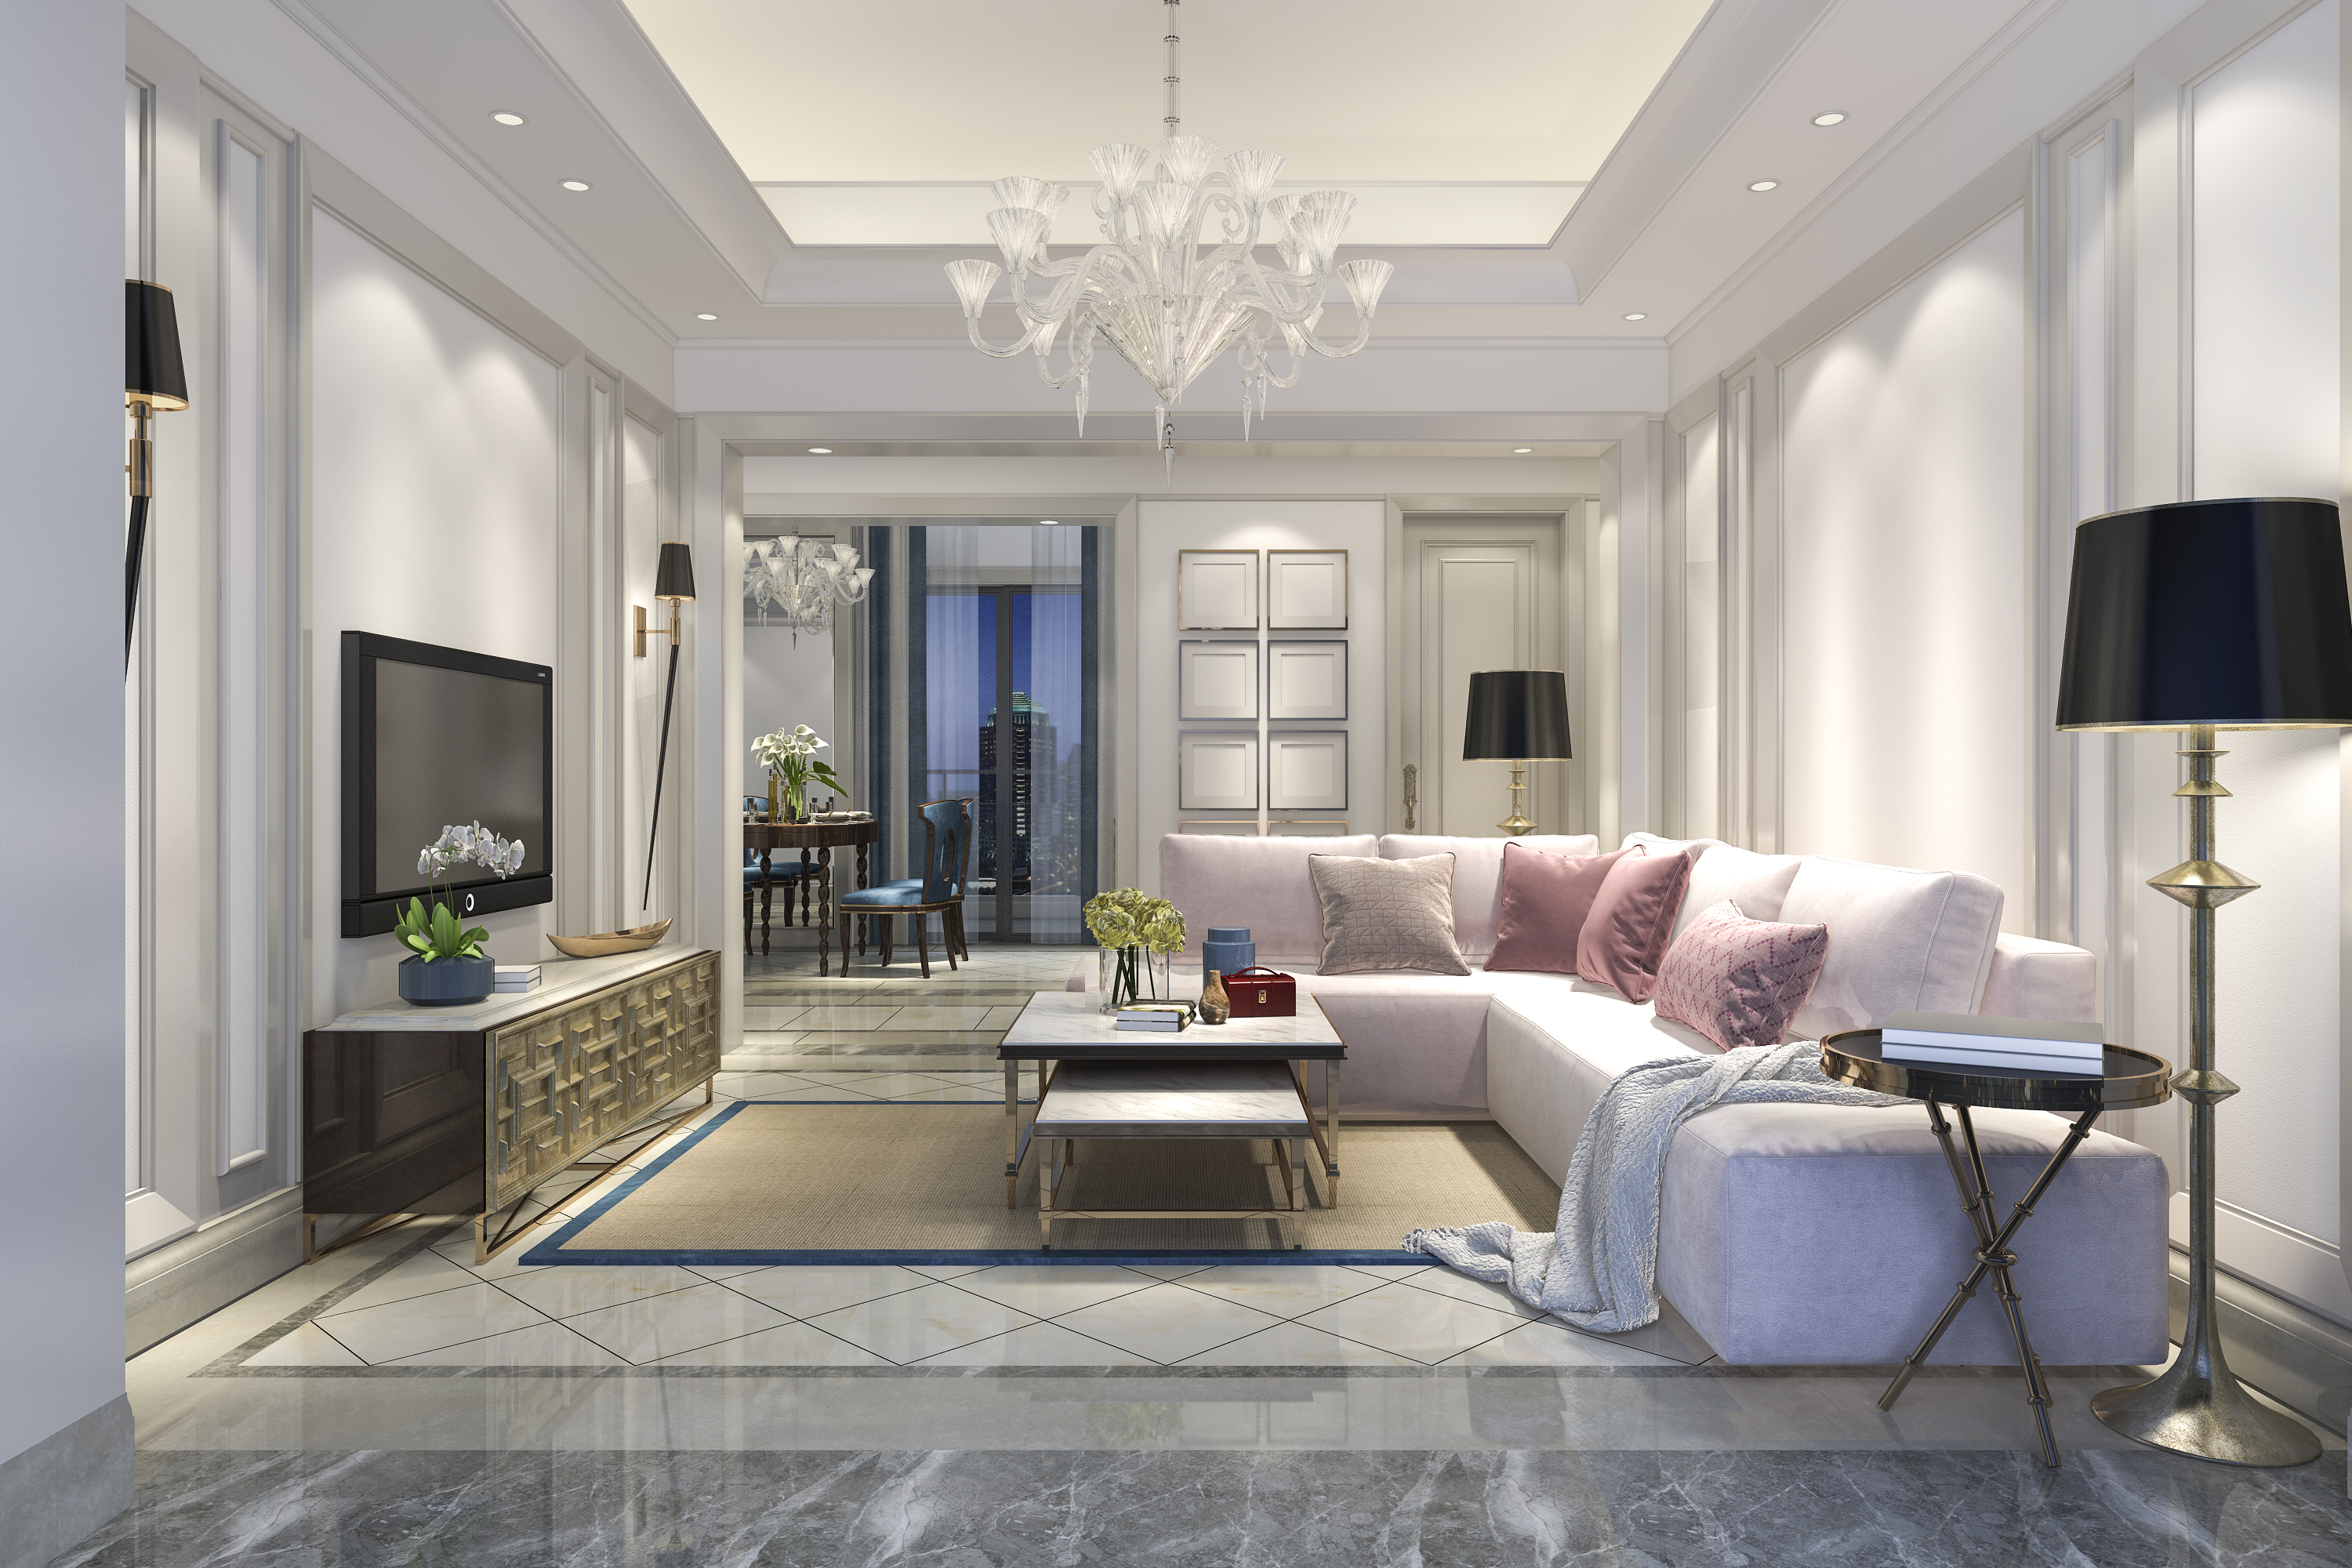 10 Creative Living Room Decorative Tips And Tricks That You Should Try Now